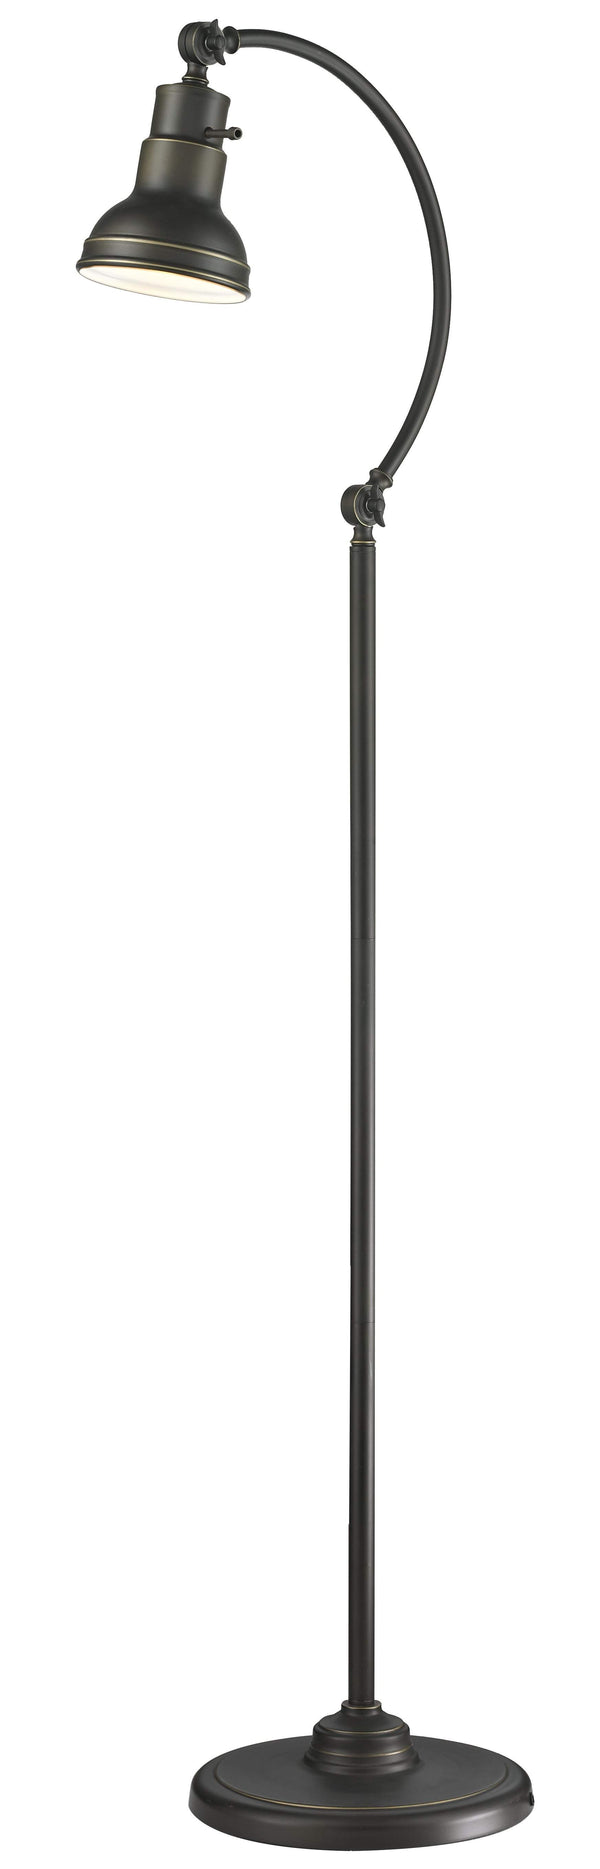 New zlite Product  Ramsay Collection 1 Light Floor Lamp in Olde Bronze Finish Sold by VaasuHomes